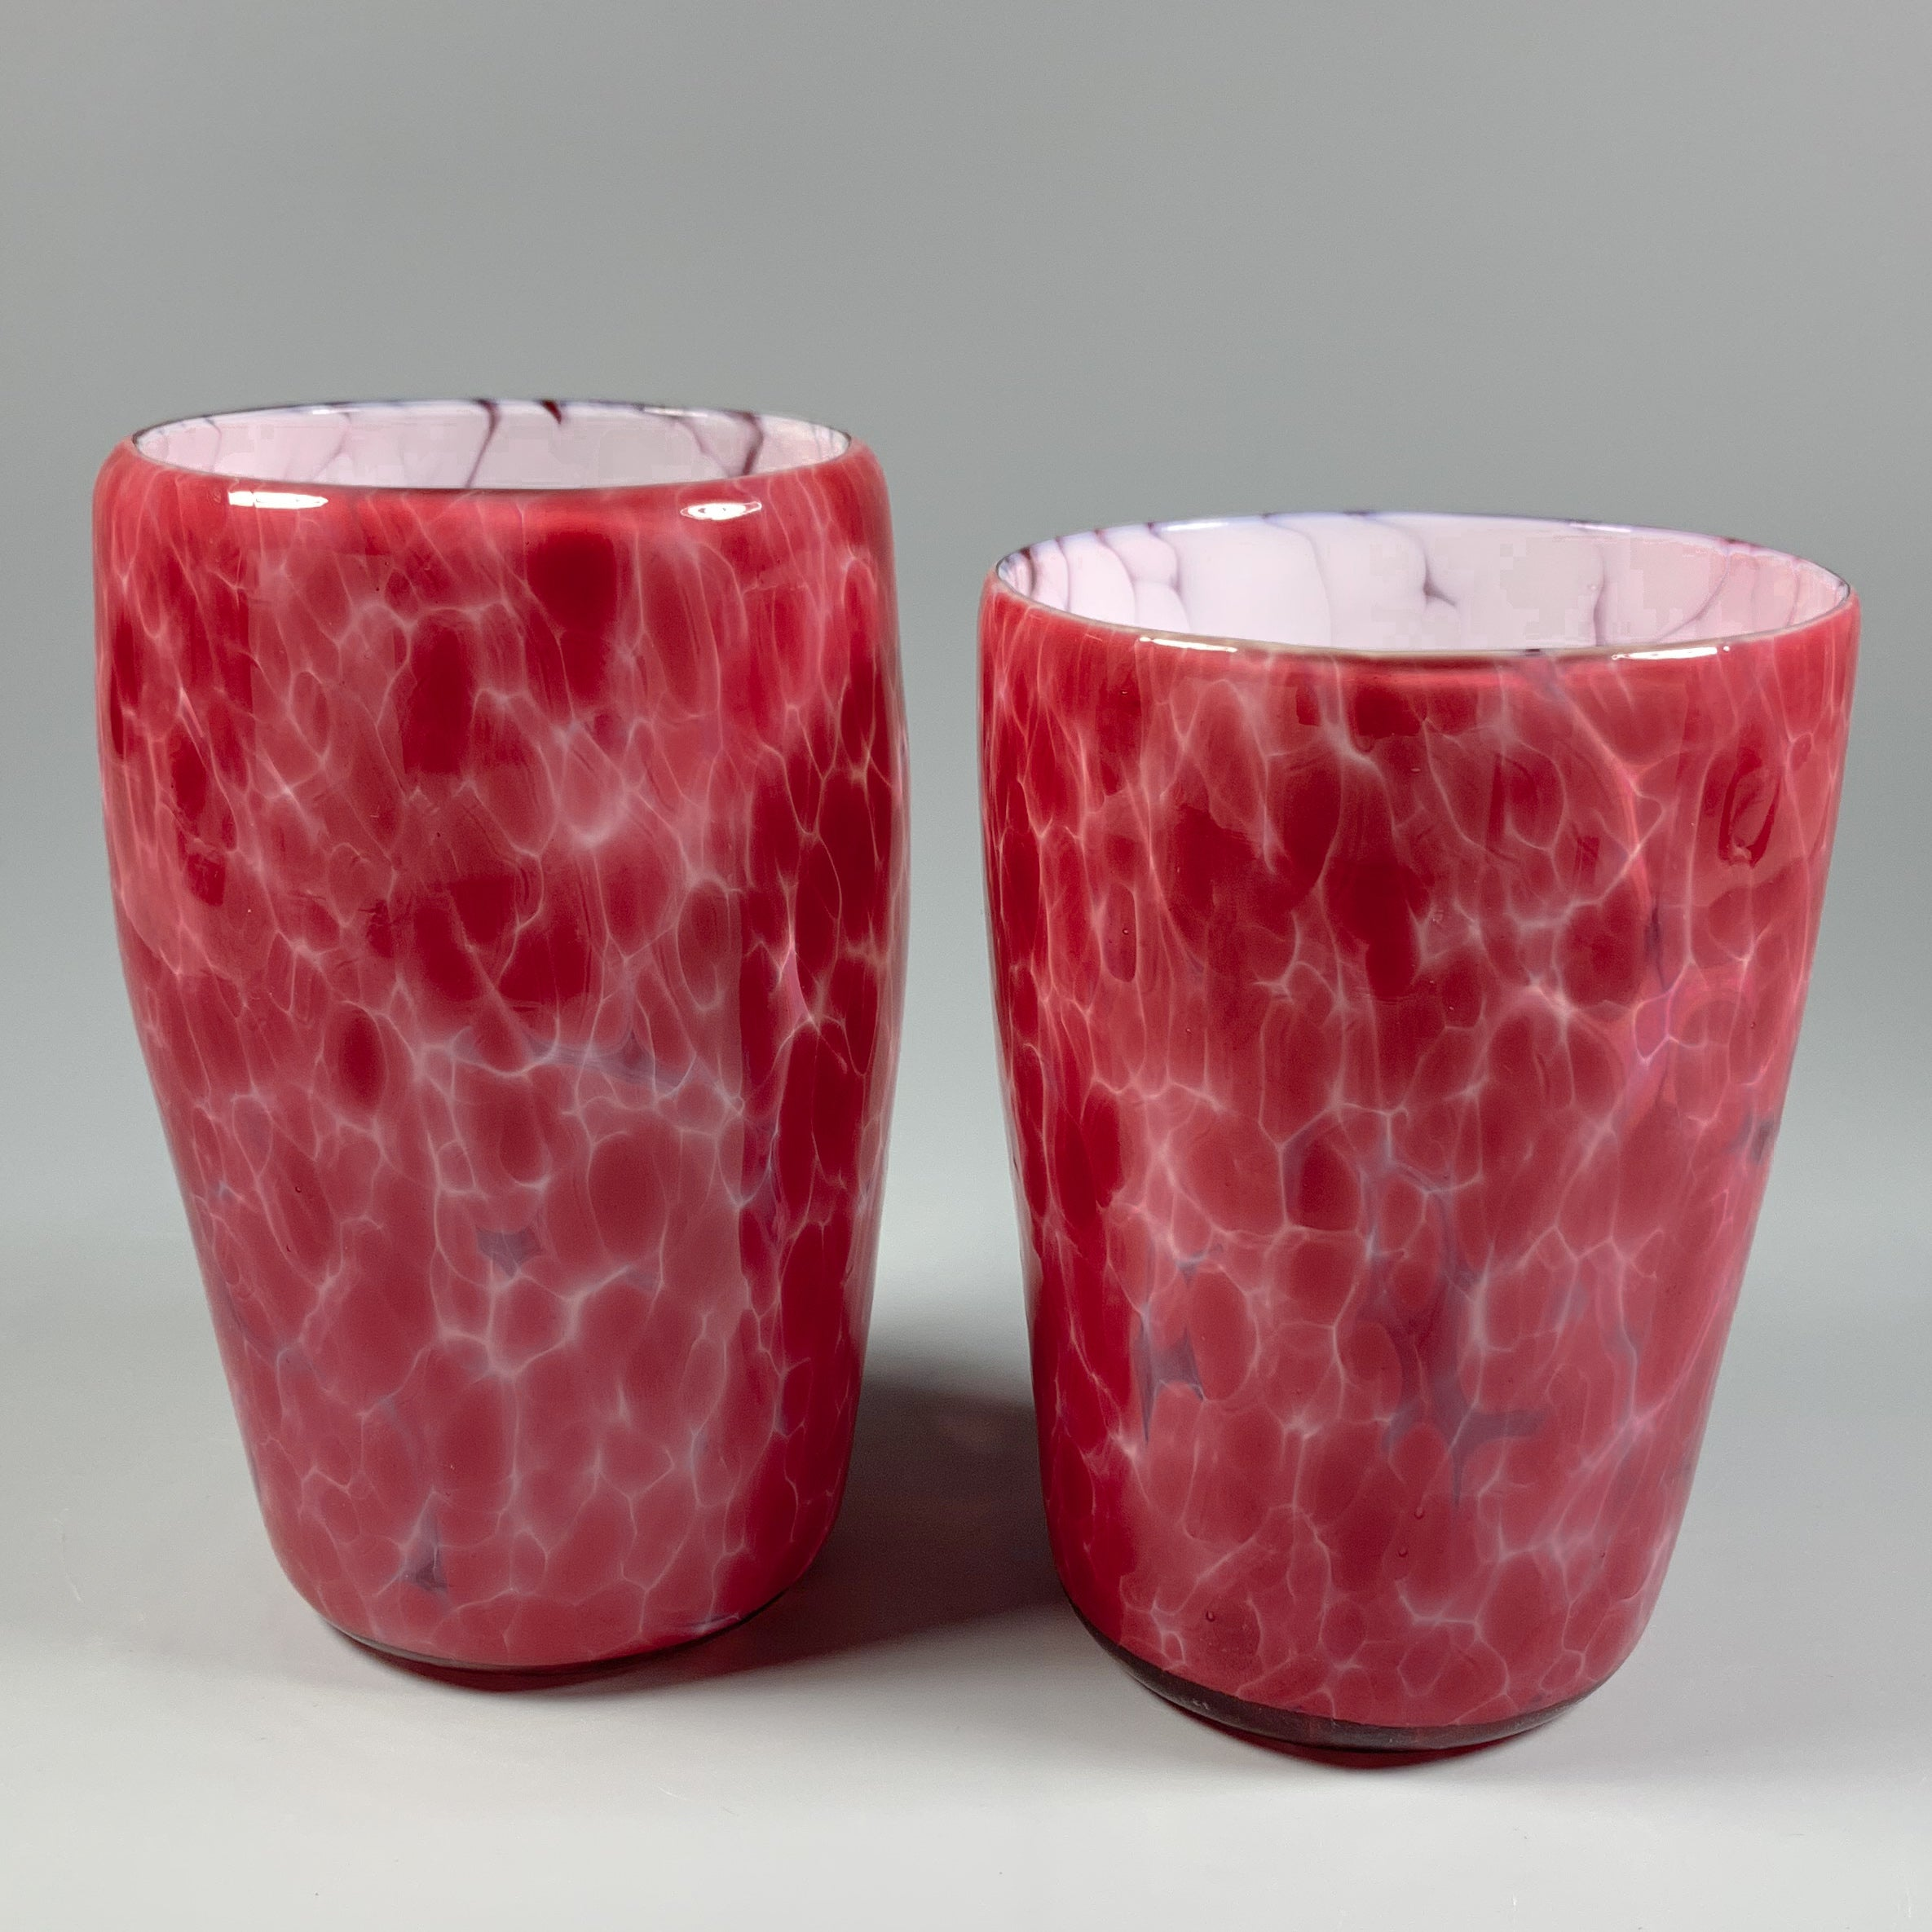 Cheerful Cups: Cherry